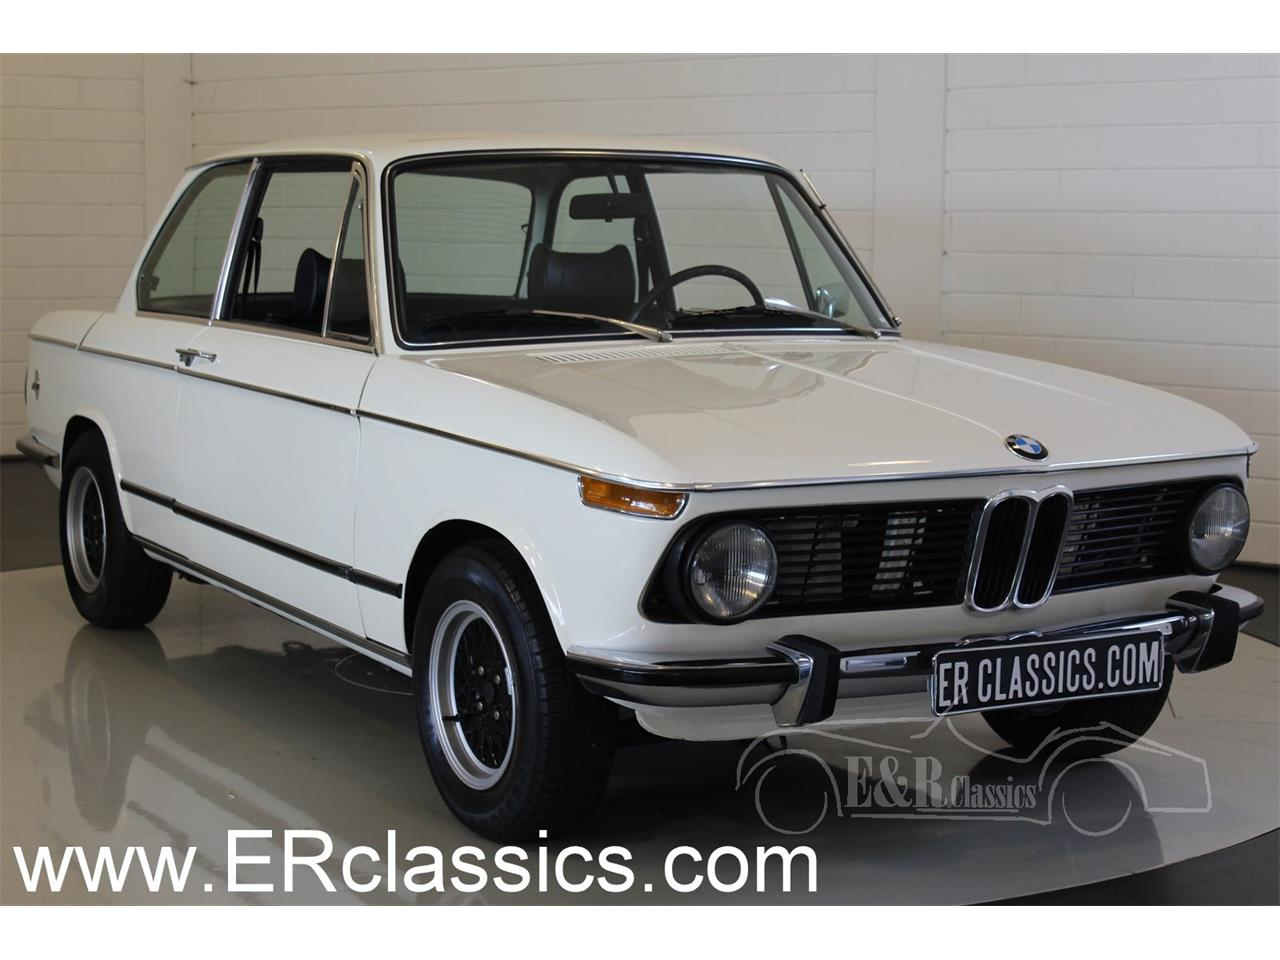 Bmw 2002 For Sale >> For Sale 1974 Bmw 2002 In Waalwijk Noord Brabant